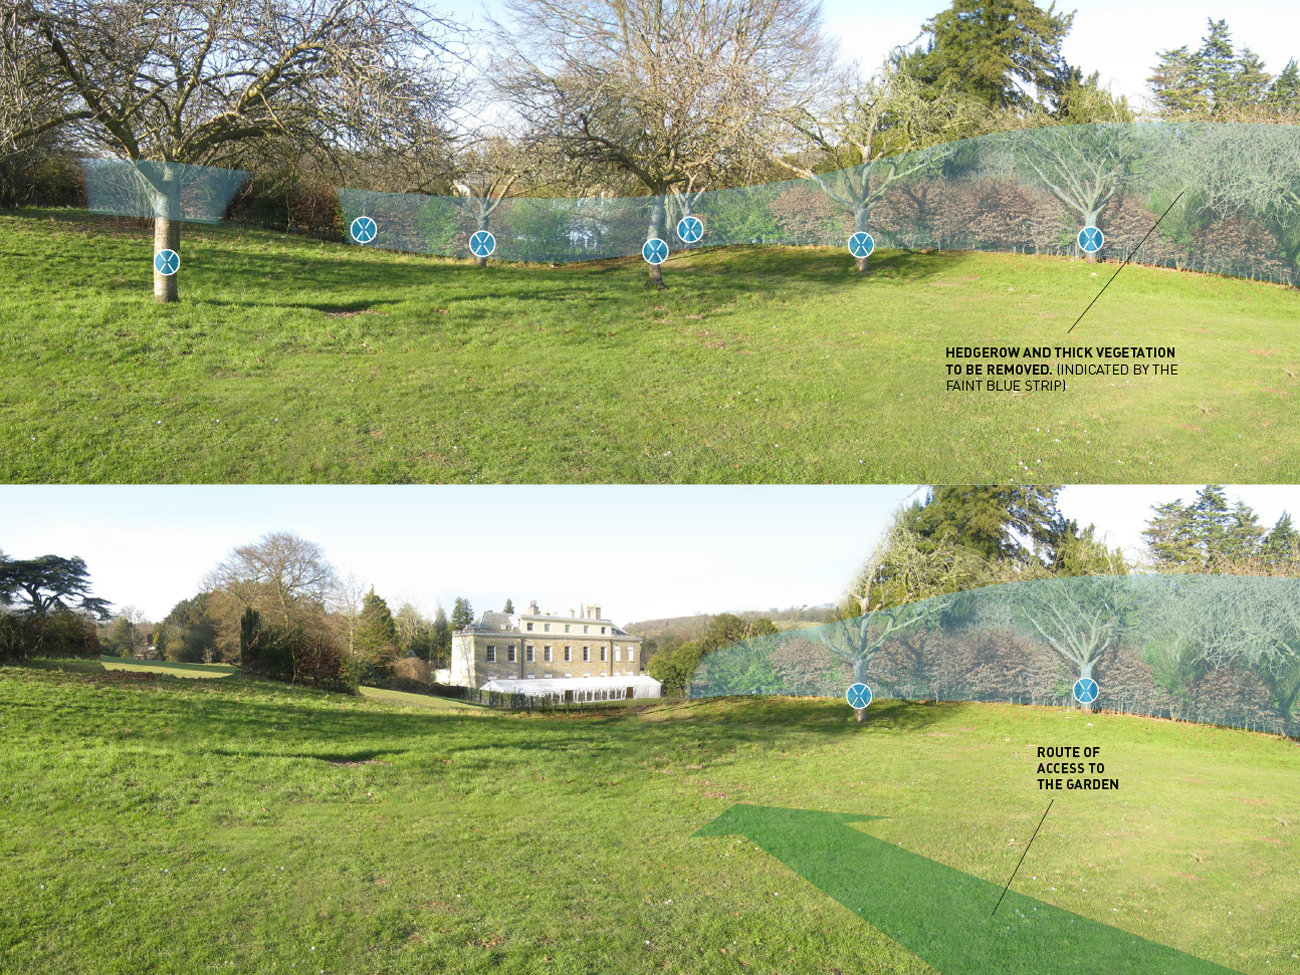 © Fiona Atkinson Landscape Design - Proposed trees and view - visual by Jim Hine